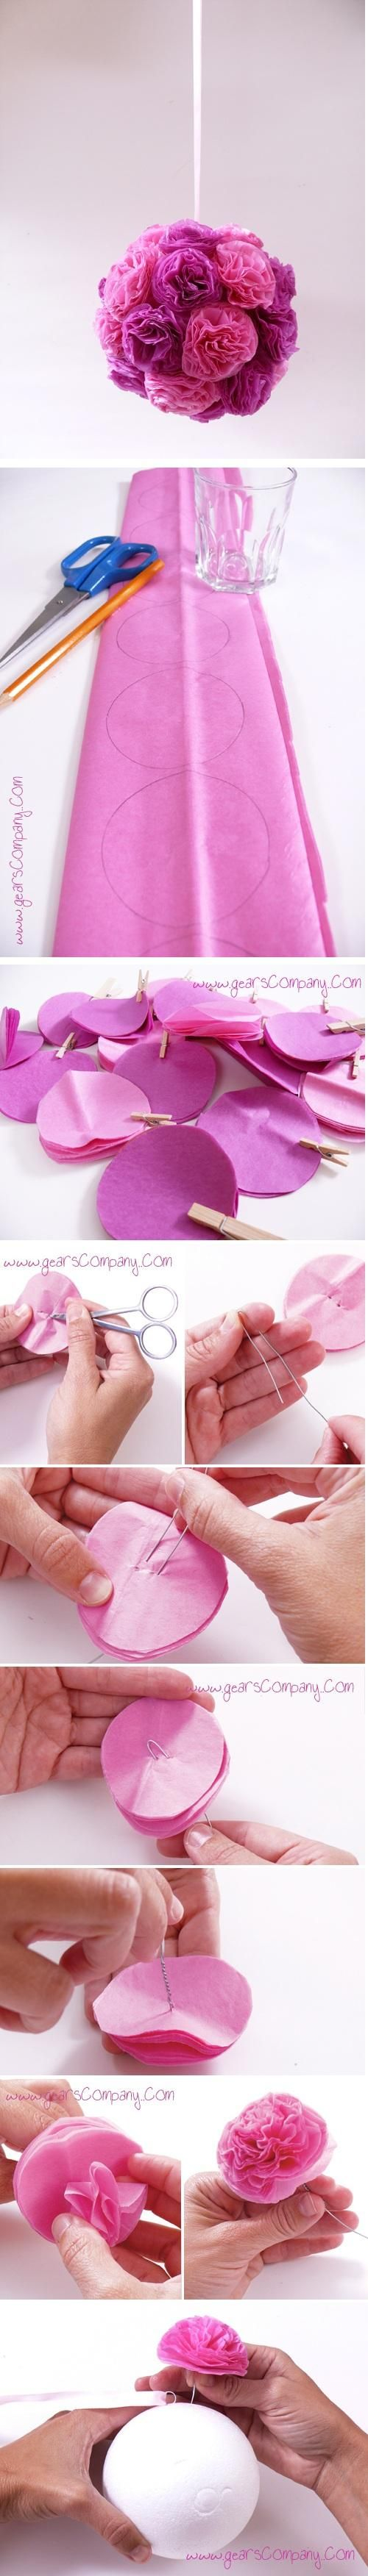 Easy to make hanging flower ball! flor de papel de seda